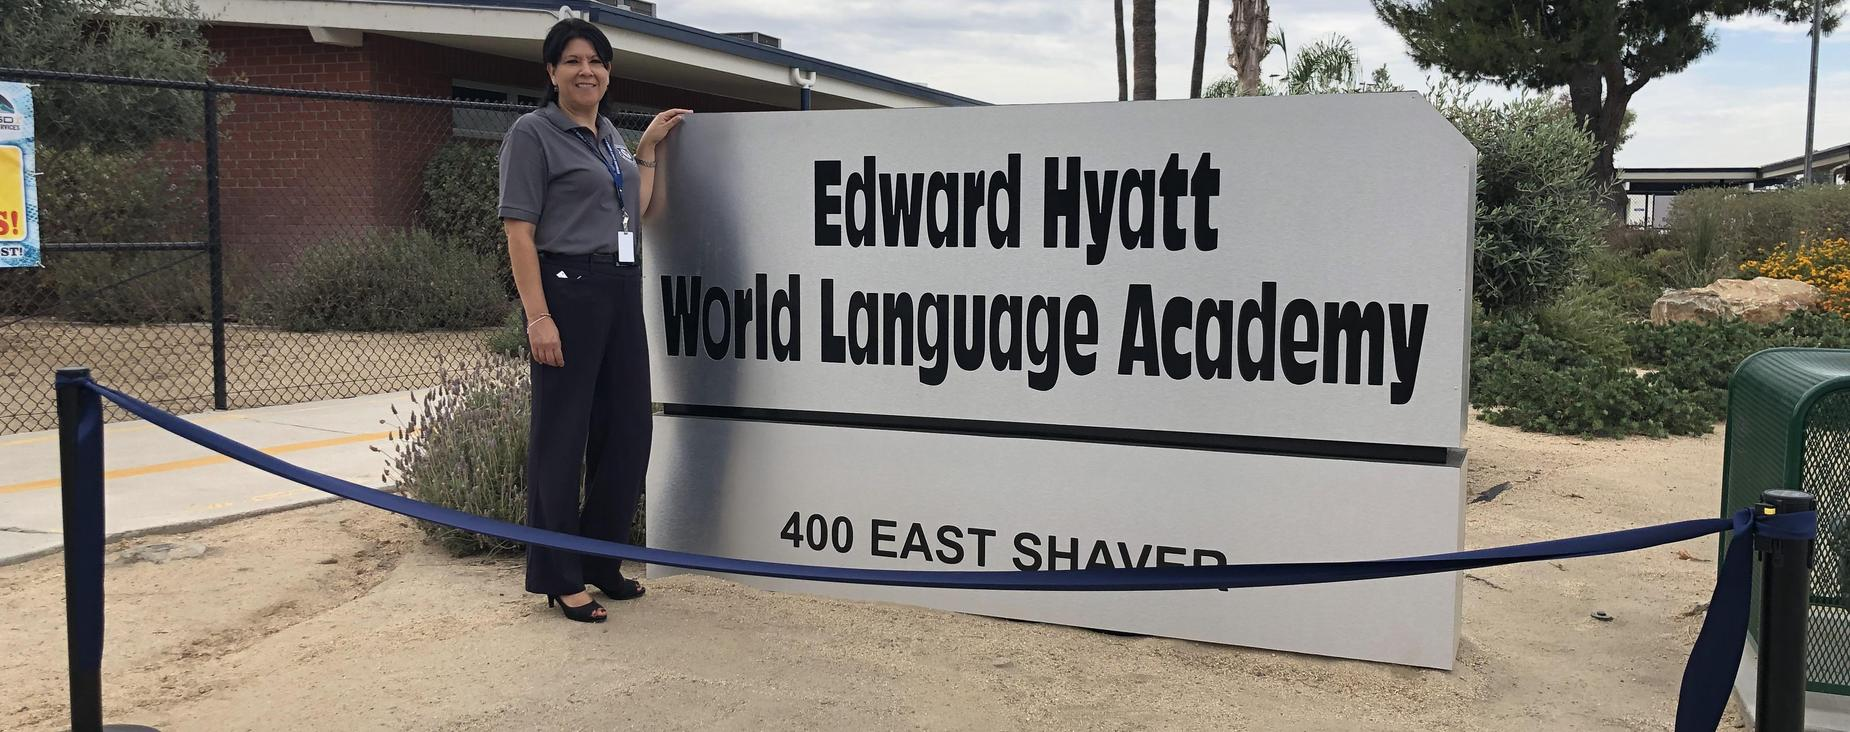 Principal Inelda Luna stands ready to welcome students to the home of the only Preschool-8th Grade Dual Language Immersion program in Riverside County!